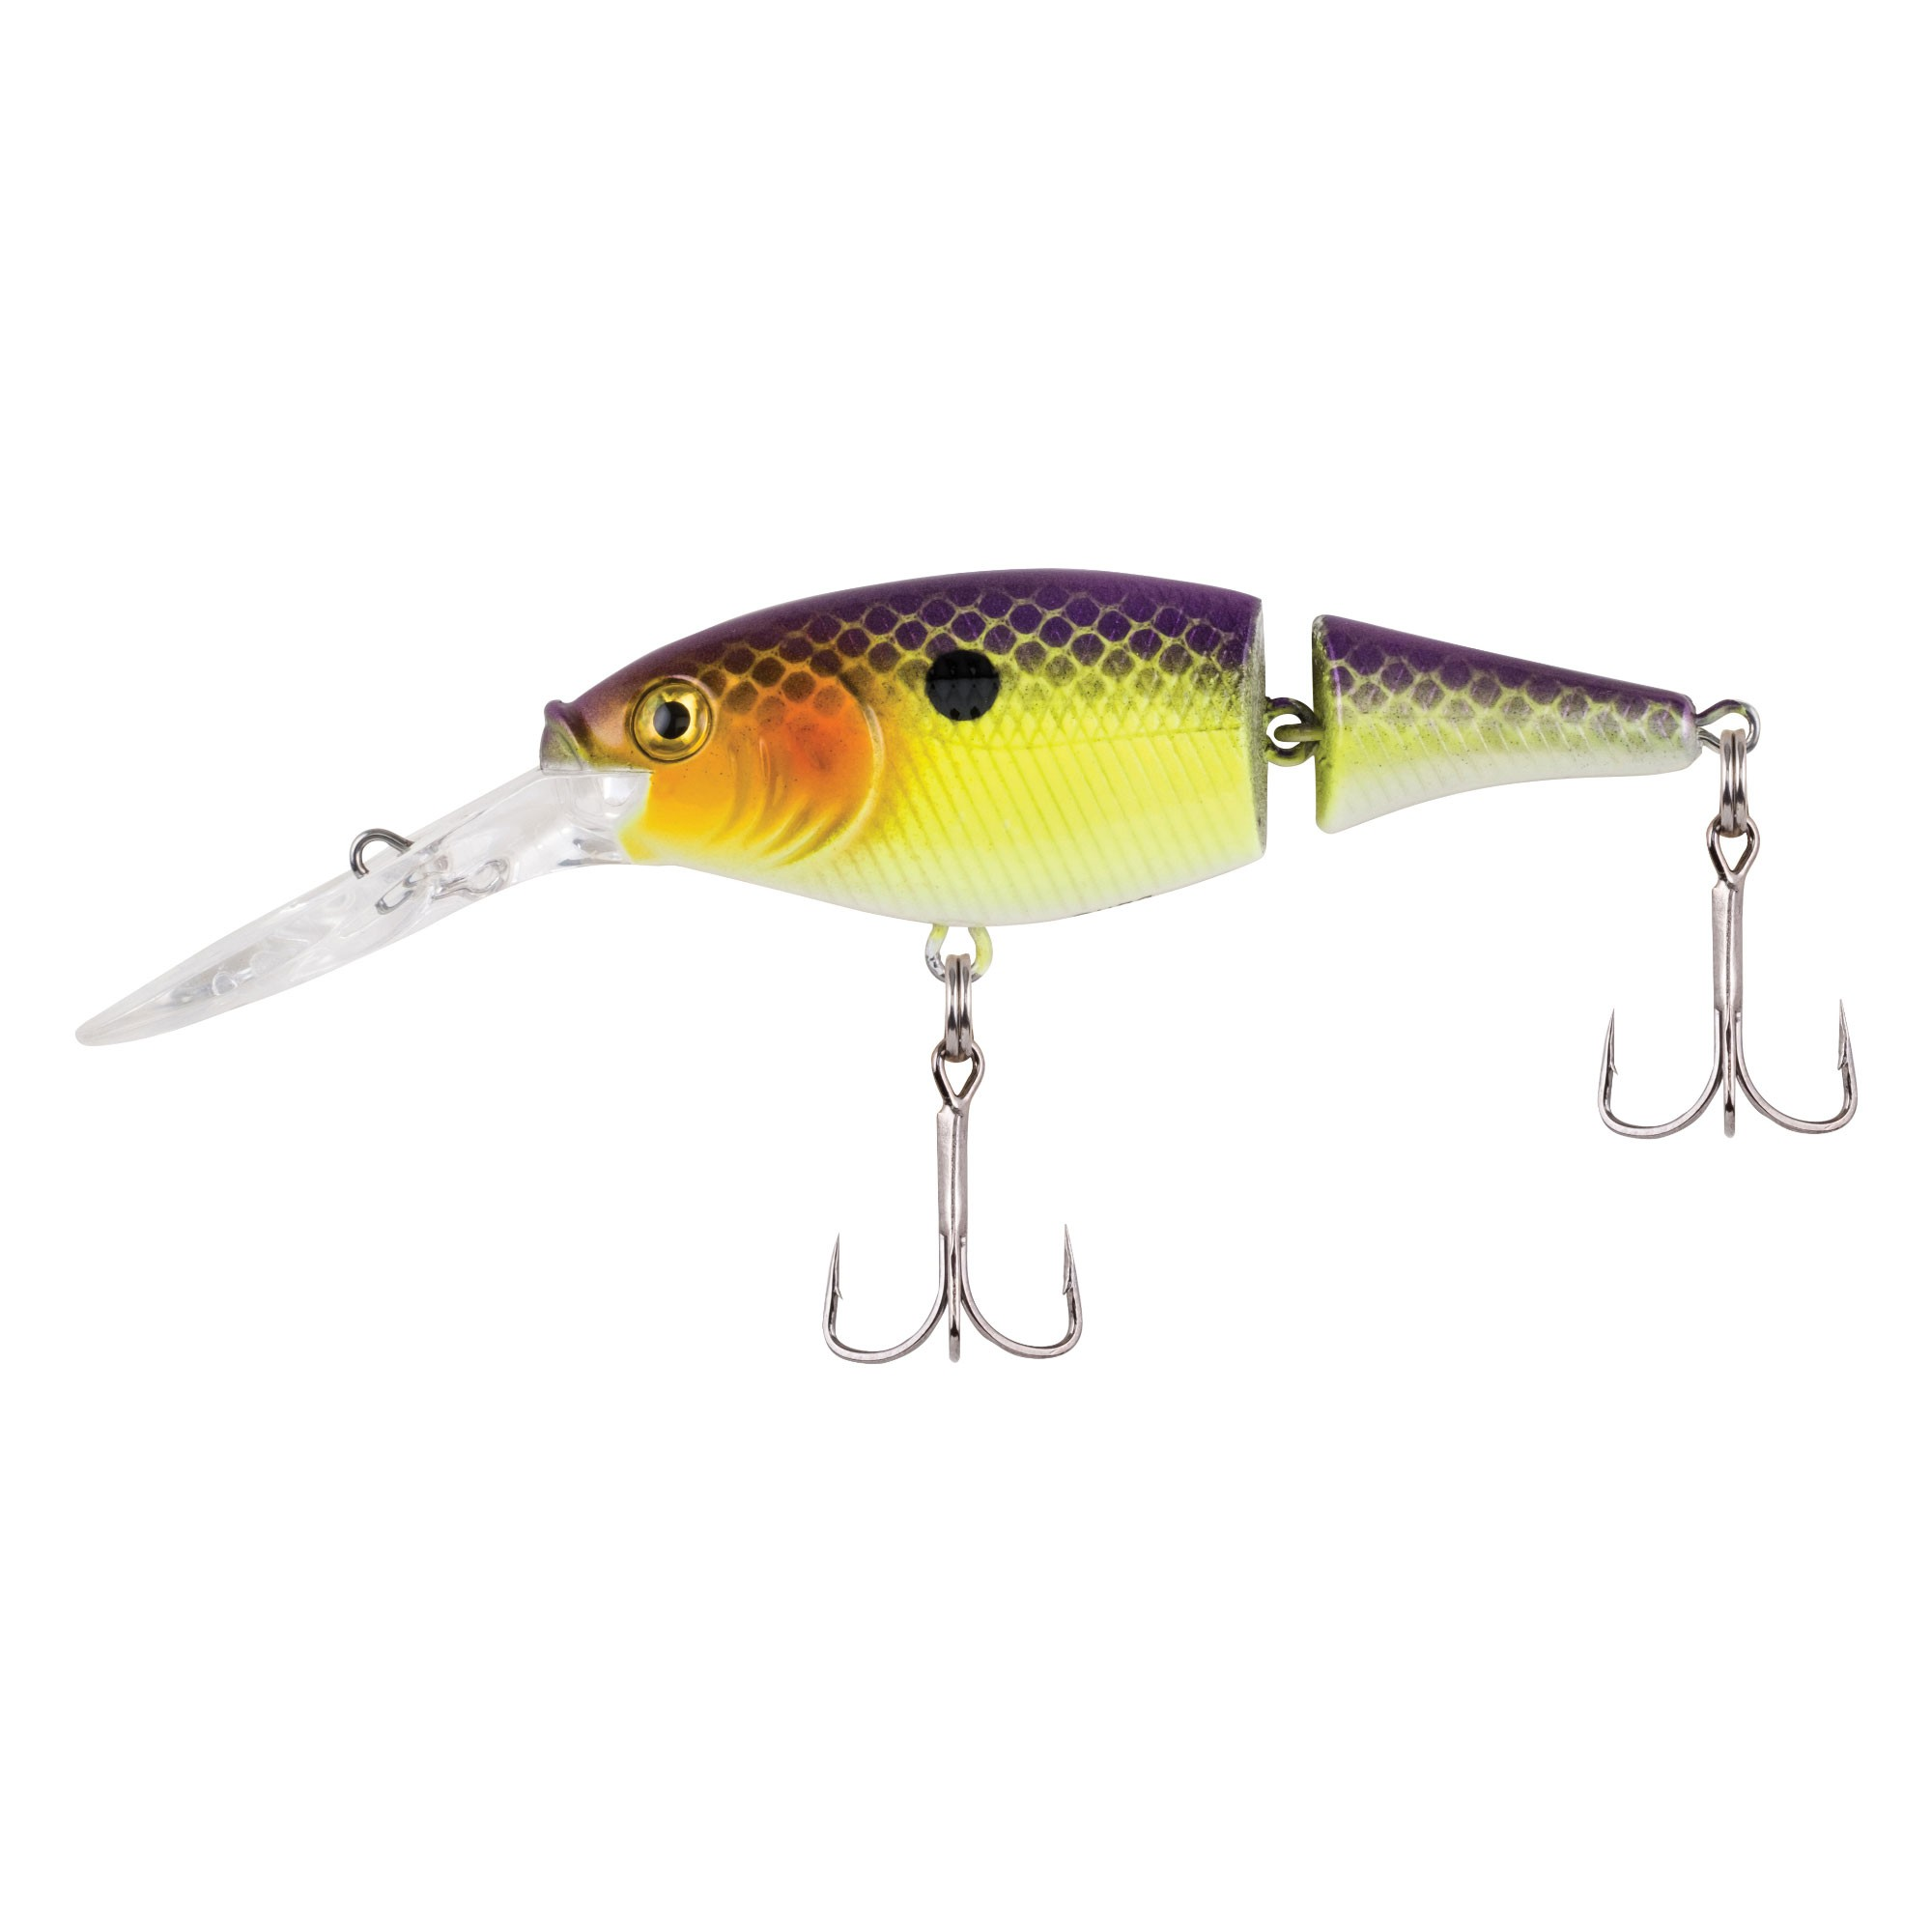 Berkley Flicker Shad Jointed table rock